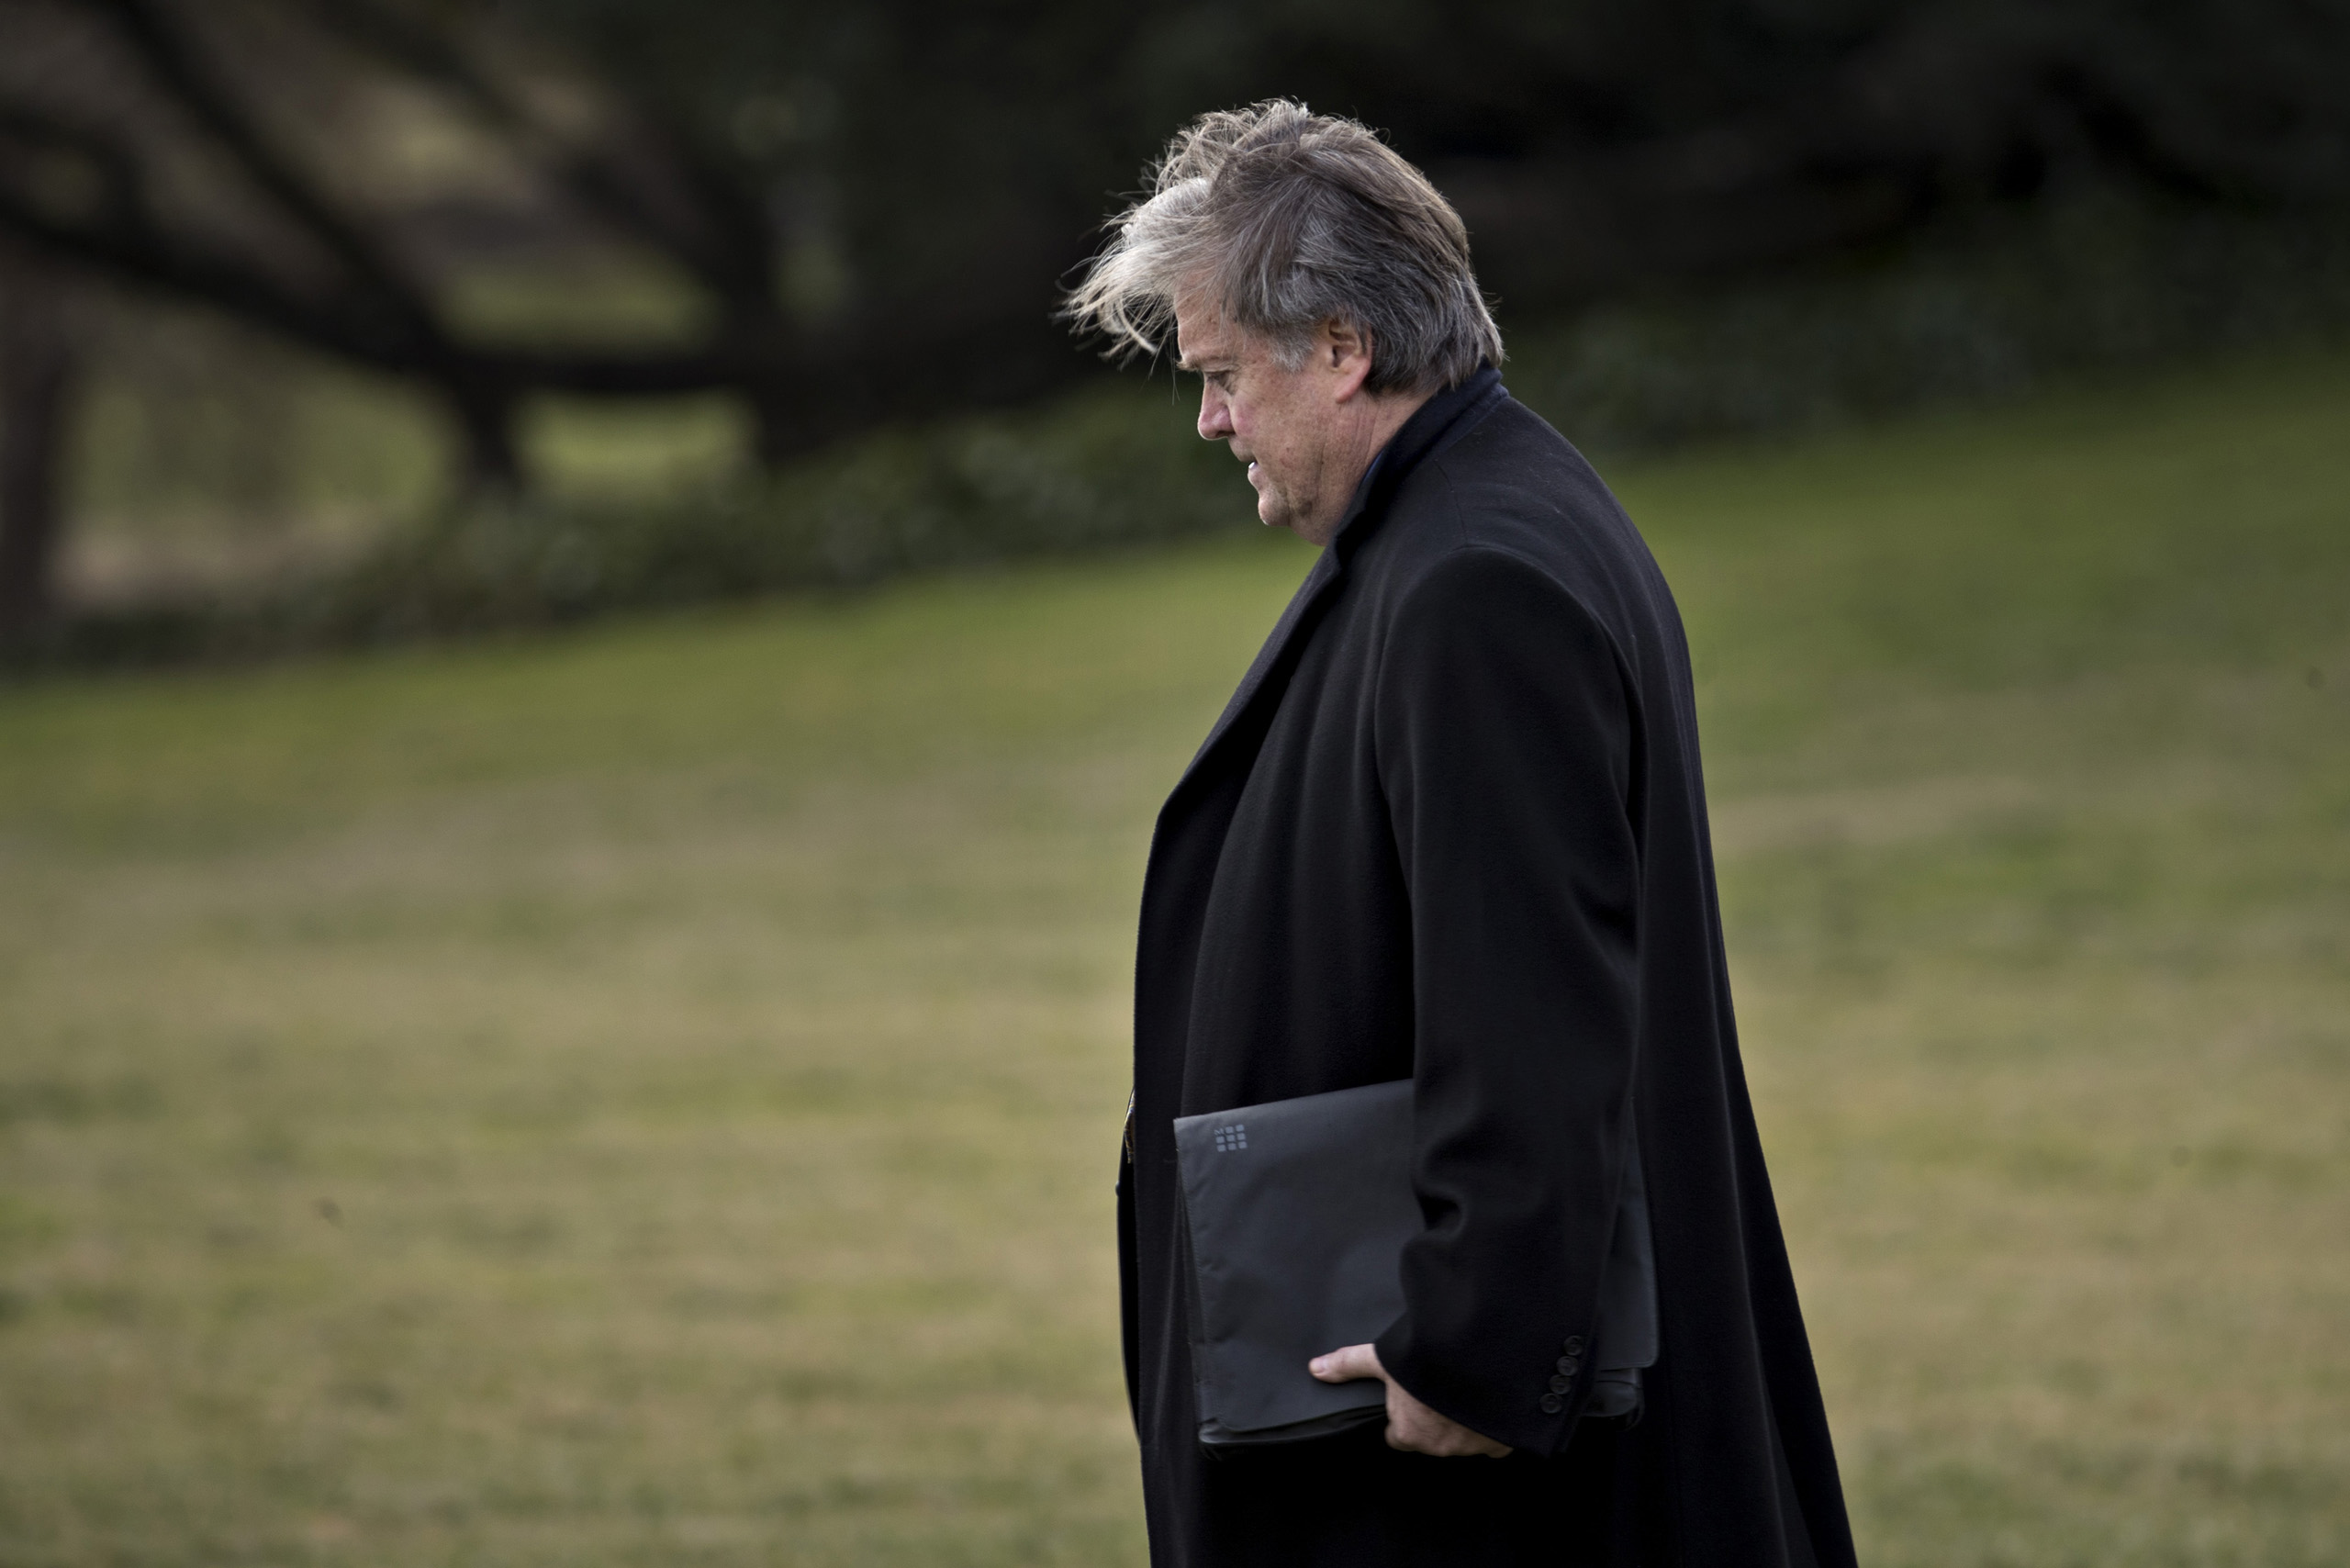 Steve Bannon, chief strategist for U.S. President Donald Trump, walks towards Marine One after Trump, not pictured, boarded on the South Lawn of the White House in Washington, D.C., Jan. 27, 2017.